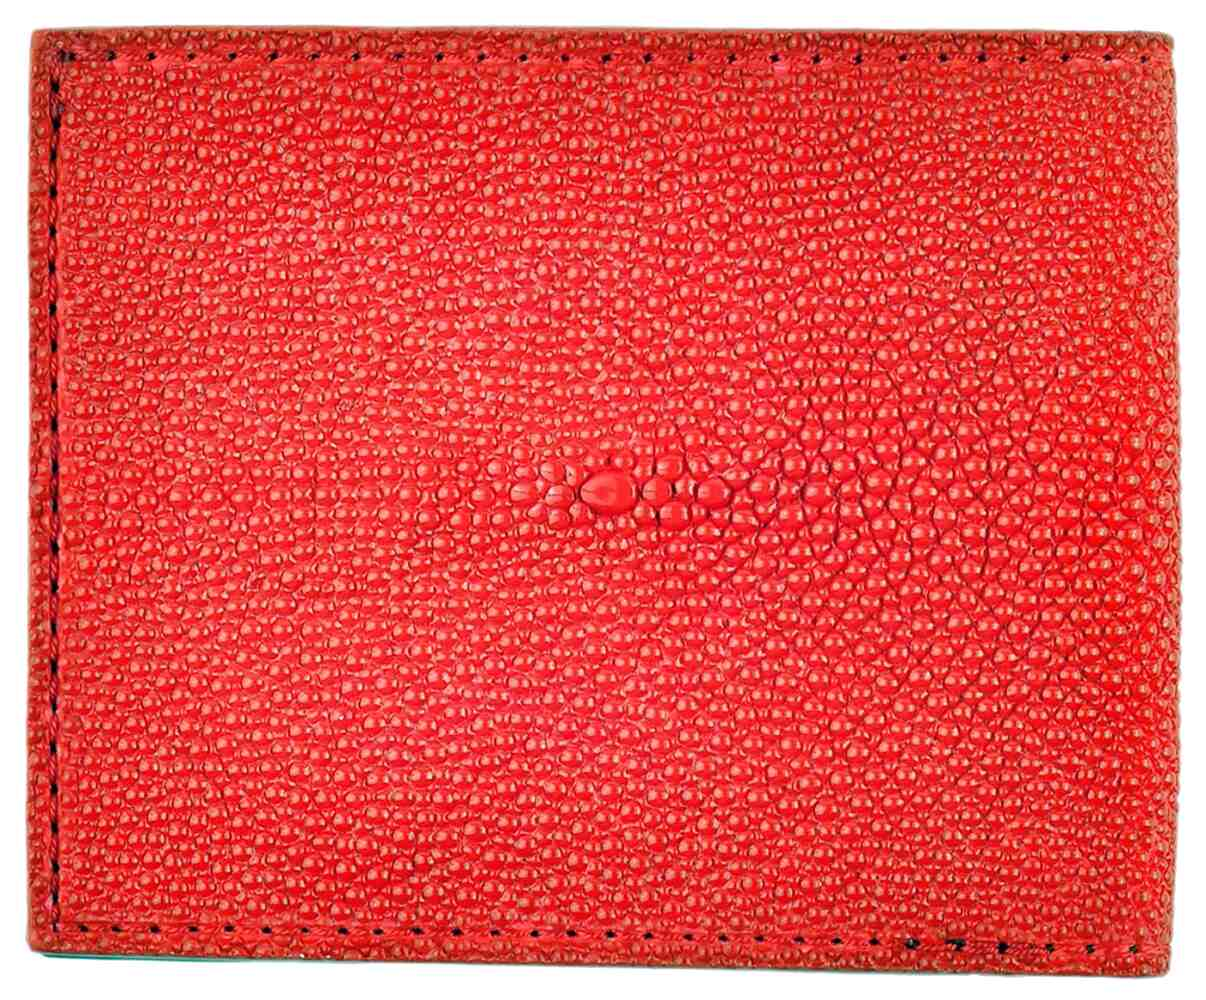 stingray wallet for sale